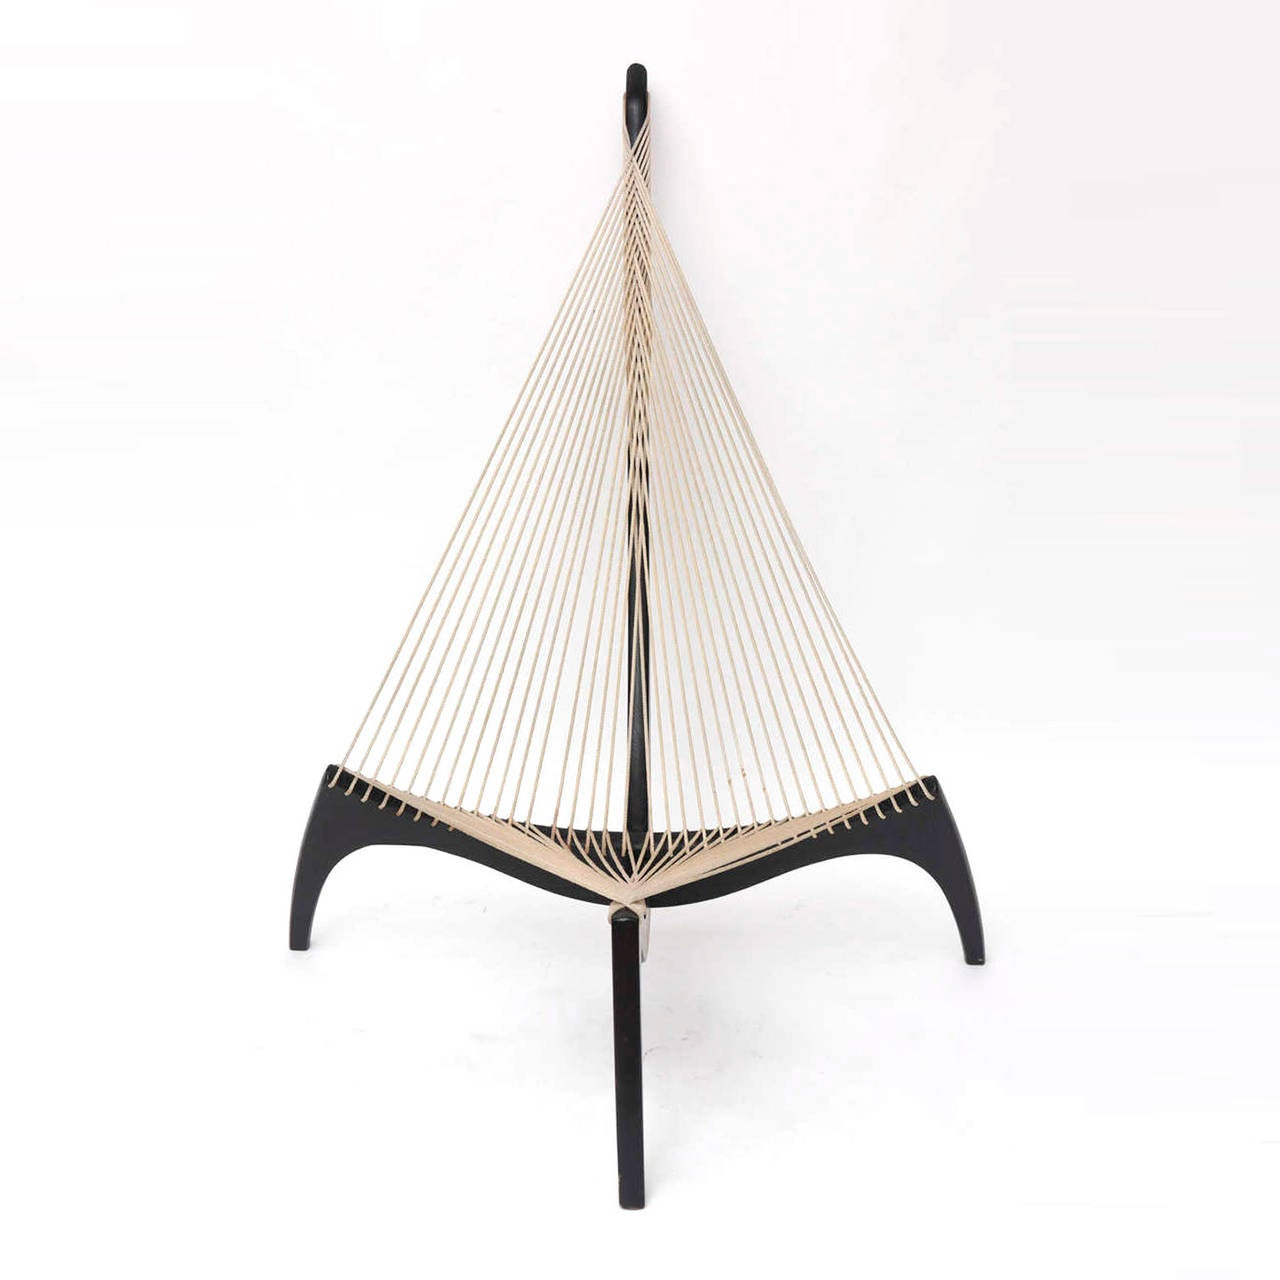 """Harp"" chair designed by Jørgen Høvelskov with structure made of solid wood lacquered in black with seat and back rope."